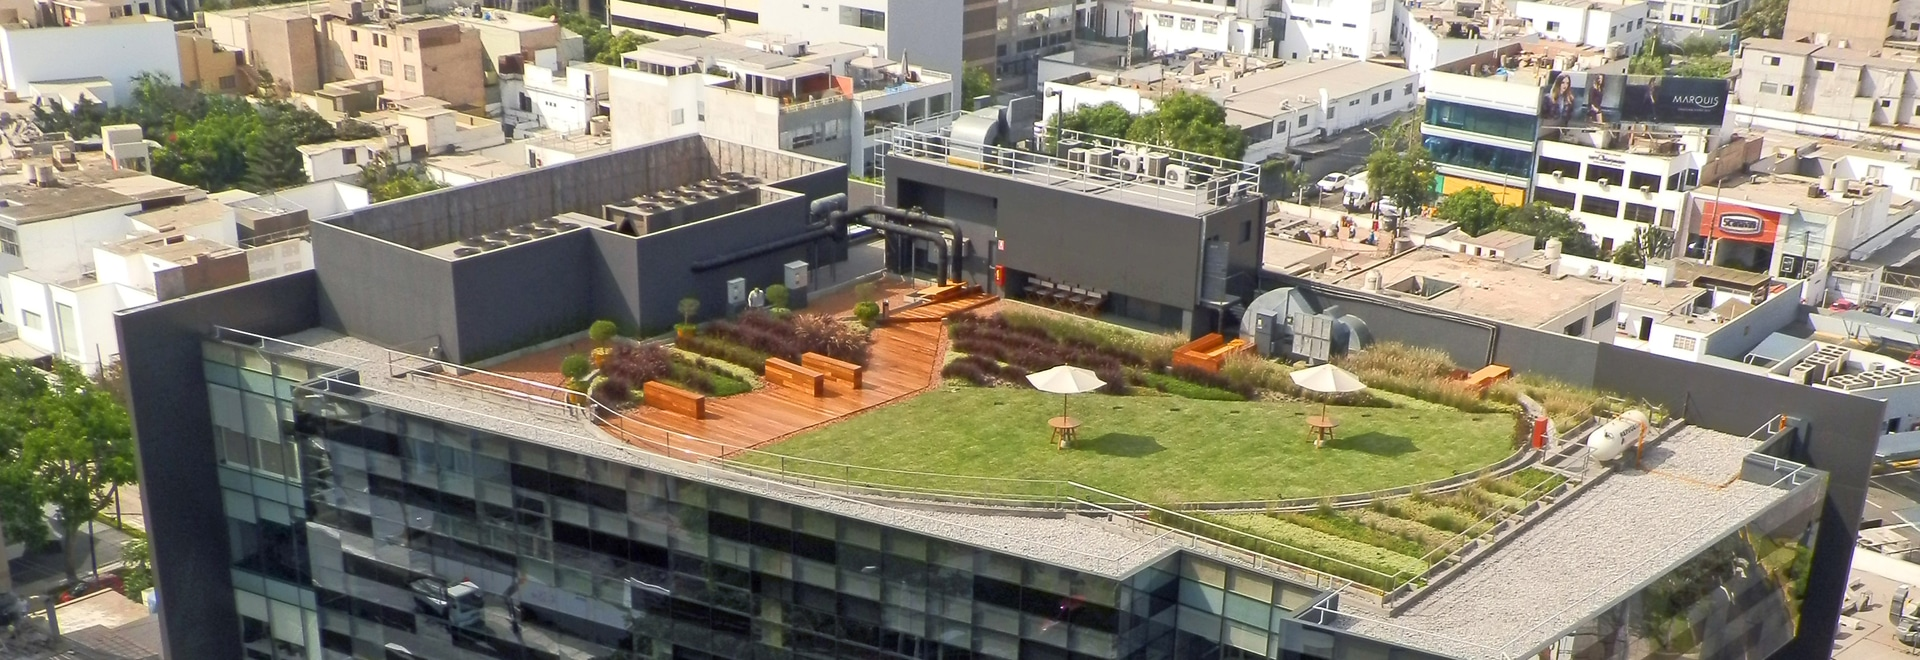 What exactly will a green roof achieve in the future?